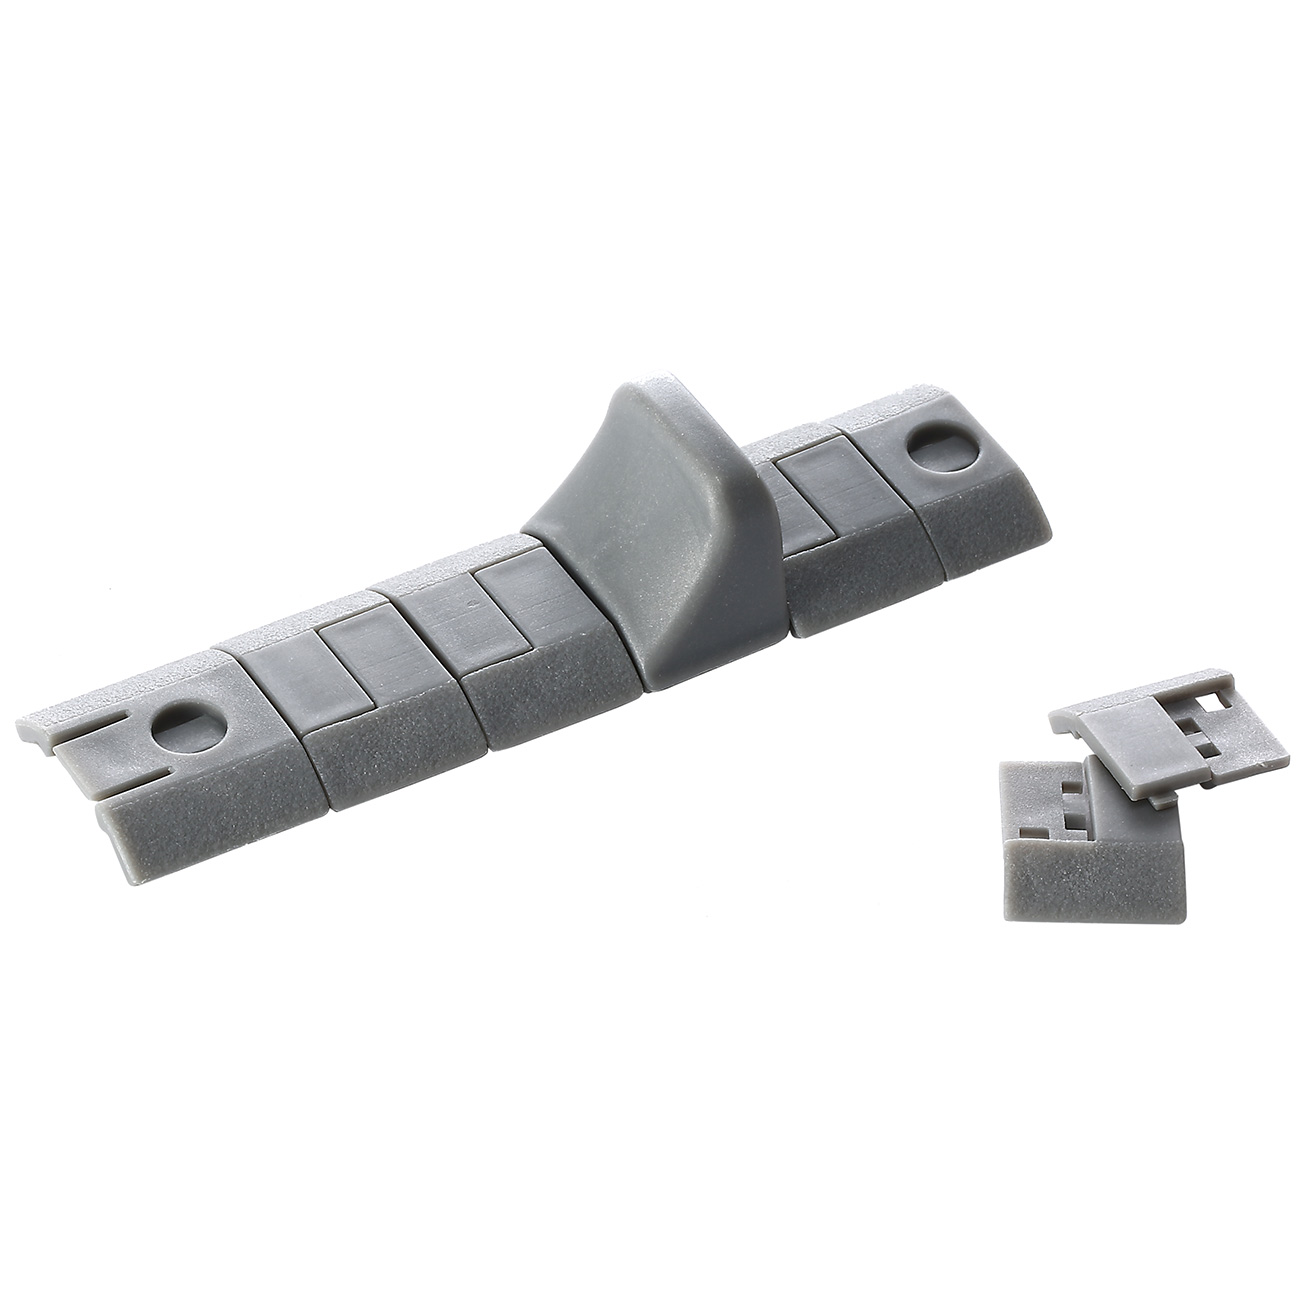 Strike Industries KeyMod Handstop / Rail Covers Set coyote grau 3